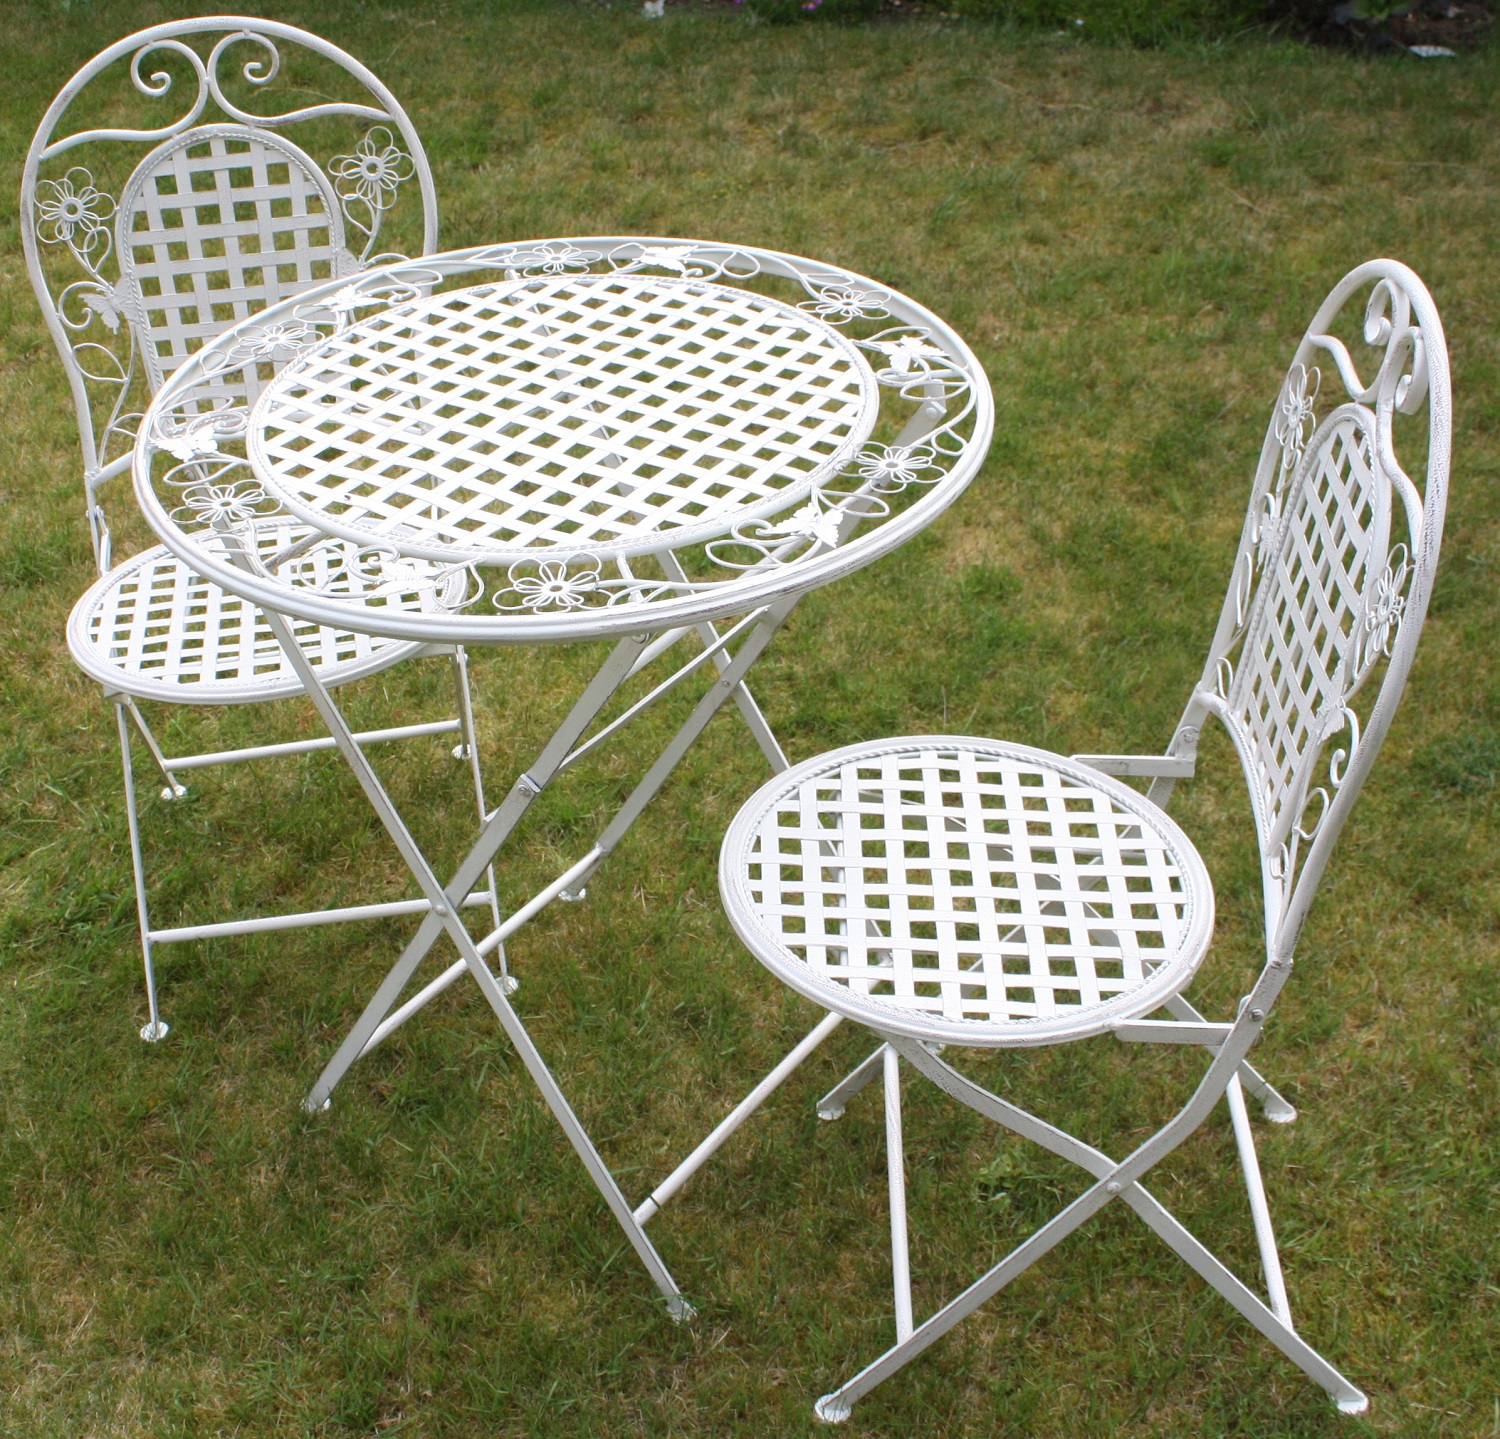 Patio Furniture Table And Chairs White Floral Outdoor Folding Metal Round Table And Chairs